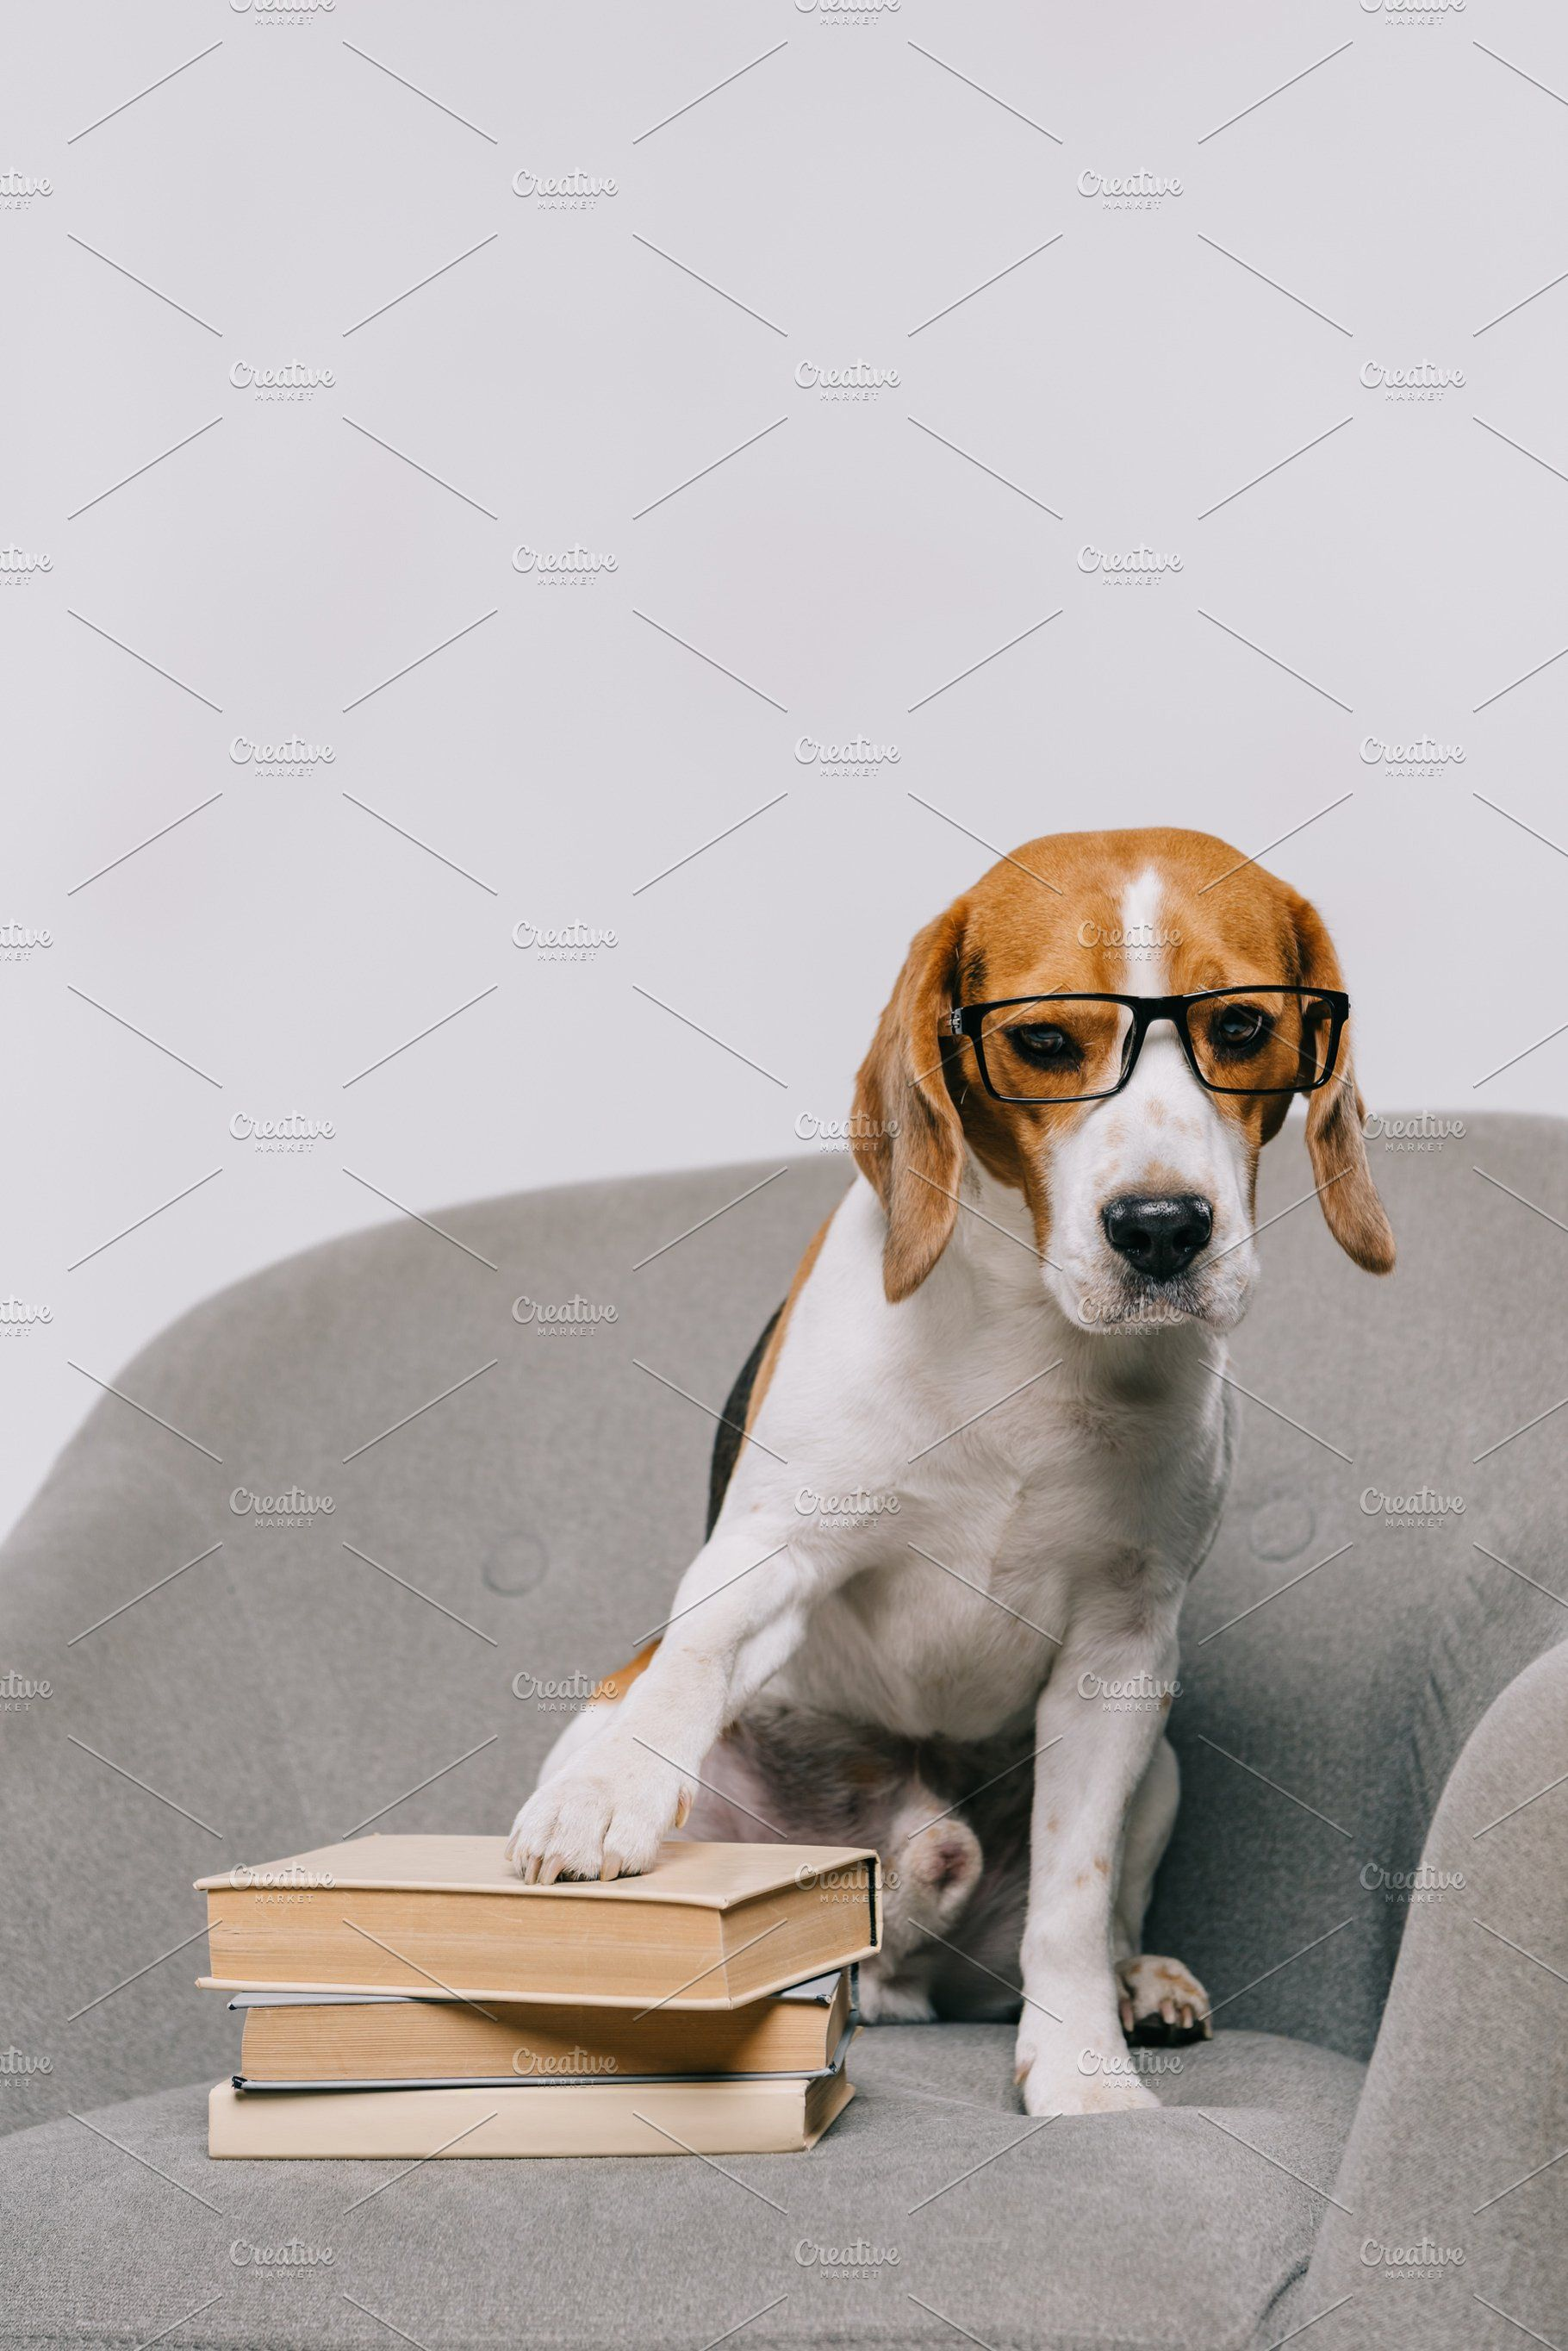 Beagle Dog Beagle Dog For Sale Beagles For Sale Online Beagle Female For Sale Puppies For Sale Uk Pocket Beagle For Sale Bea Beagle Dog Beagle Dog With Glasses